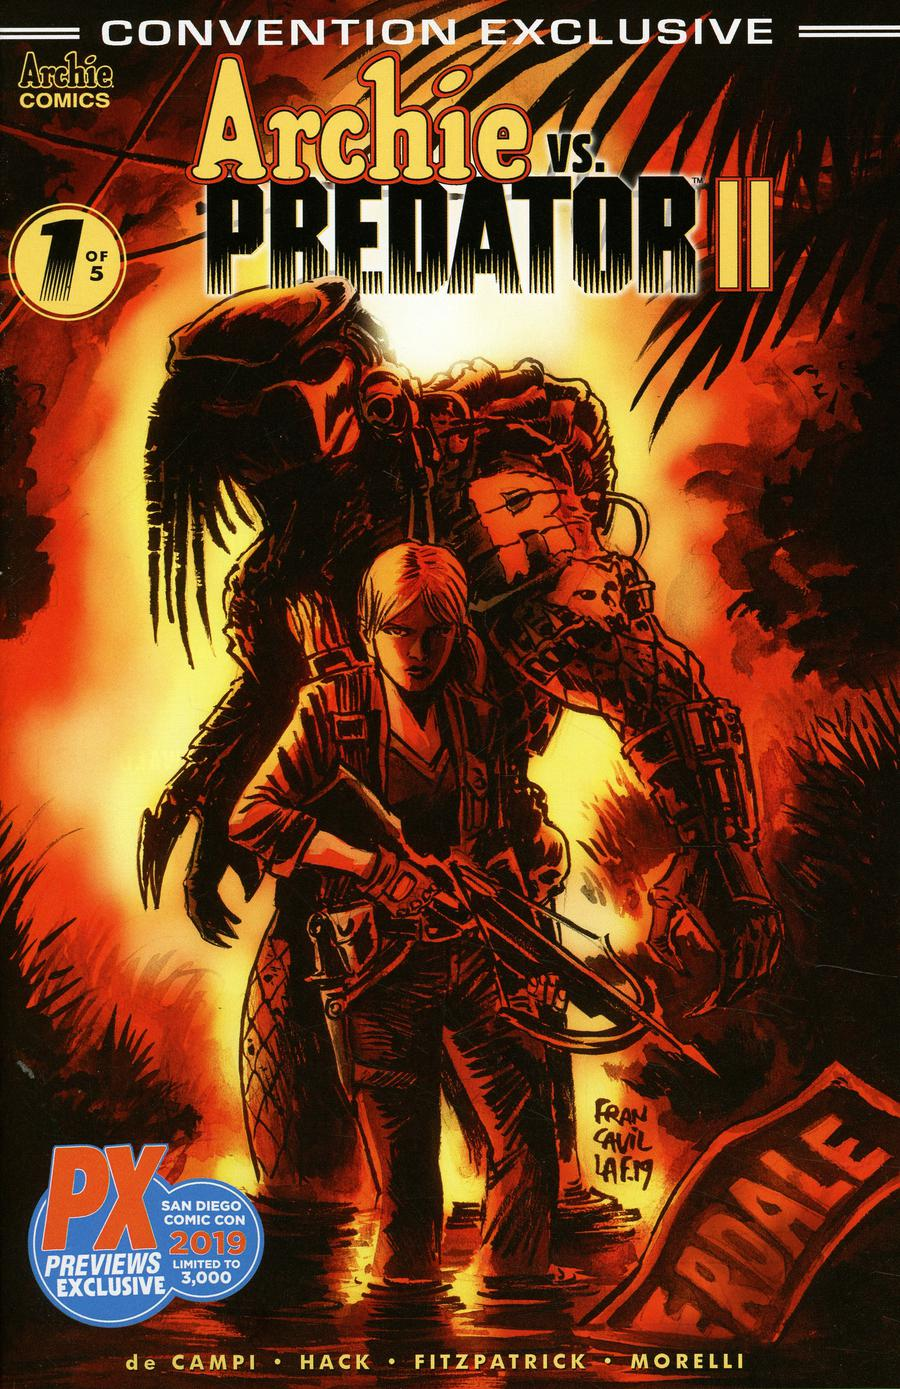 Archie vs Predator II #1 Cover G SDCC 2019 Exclusive Variant Cover